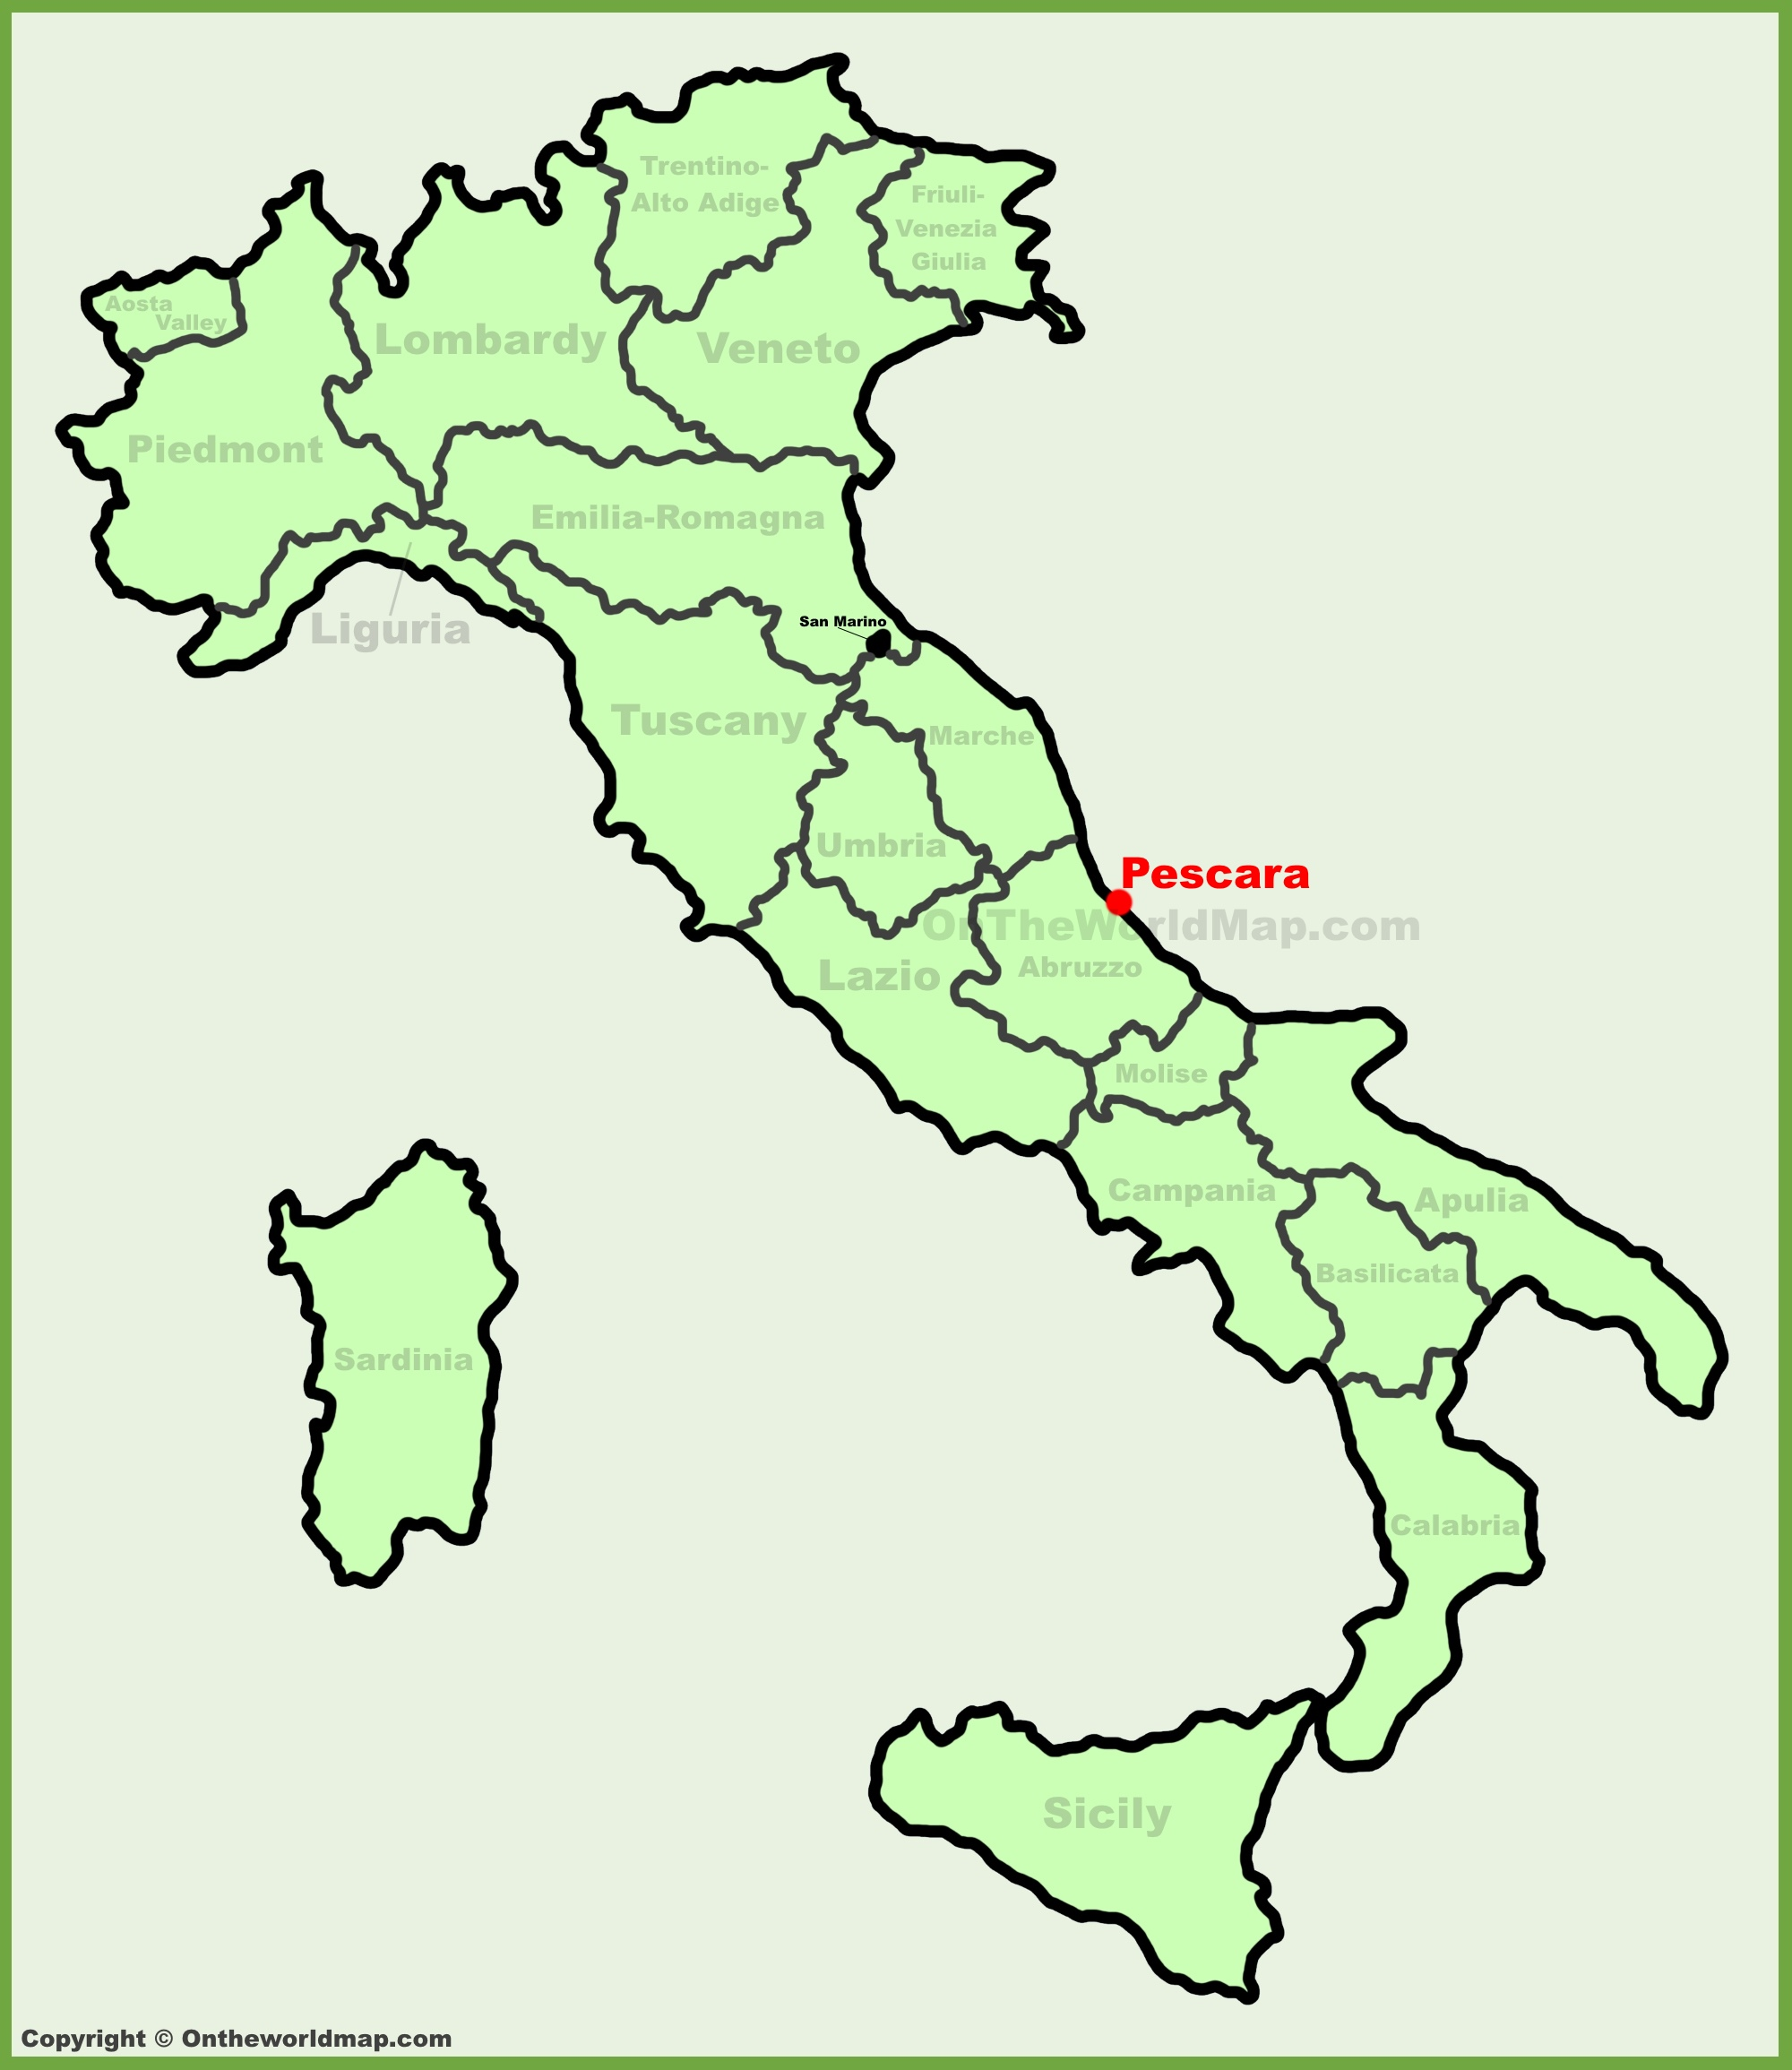 Pescara location on the Italy map